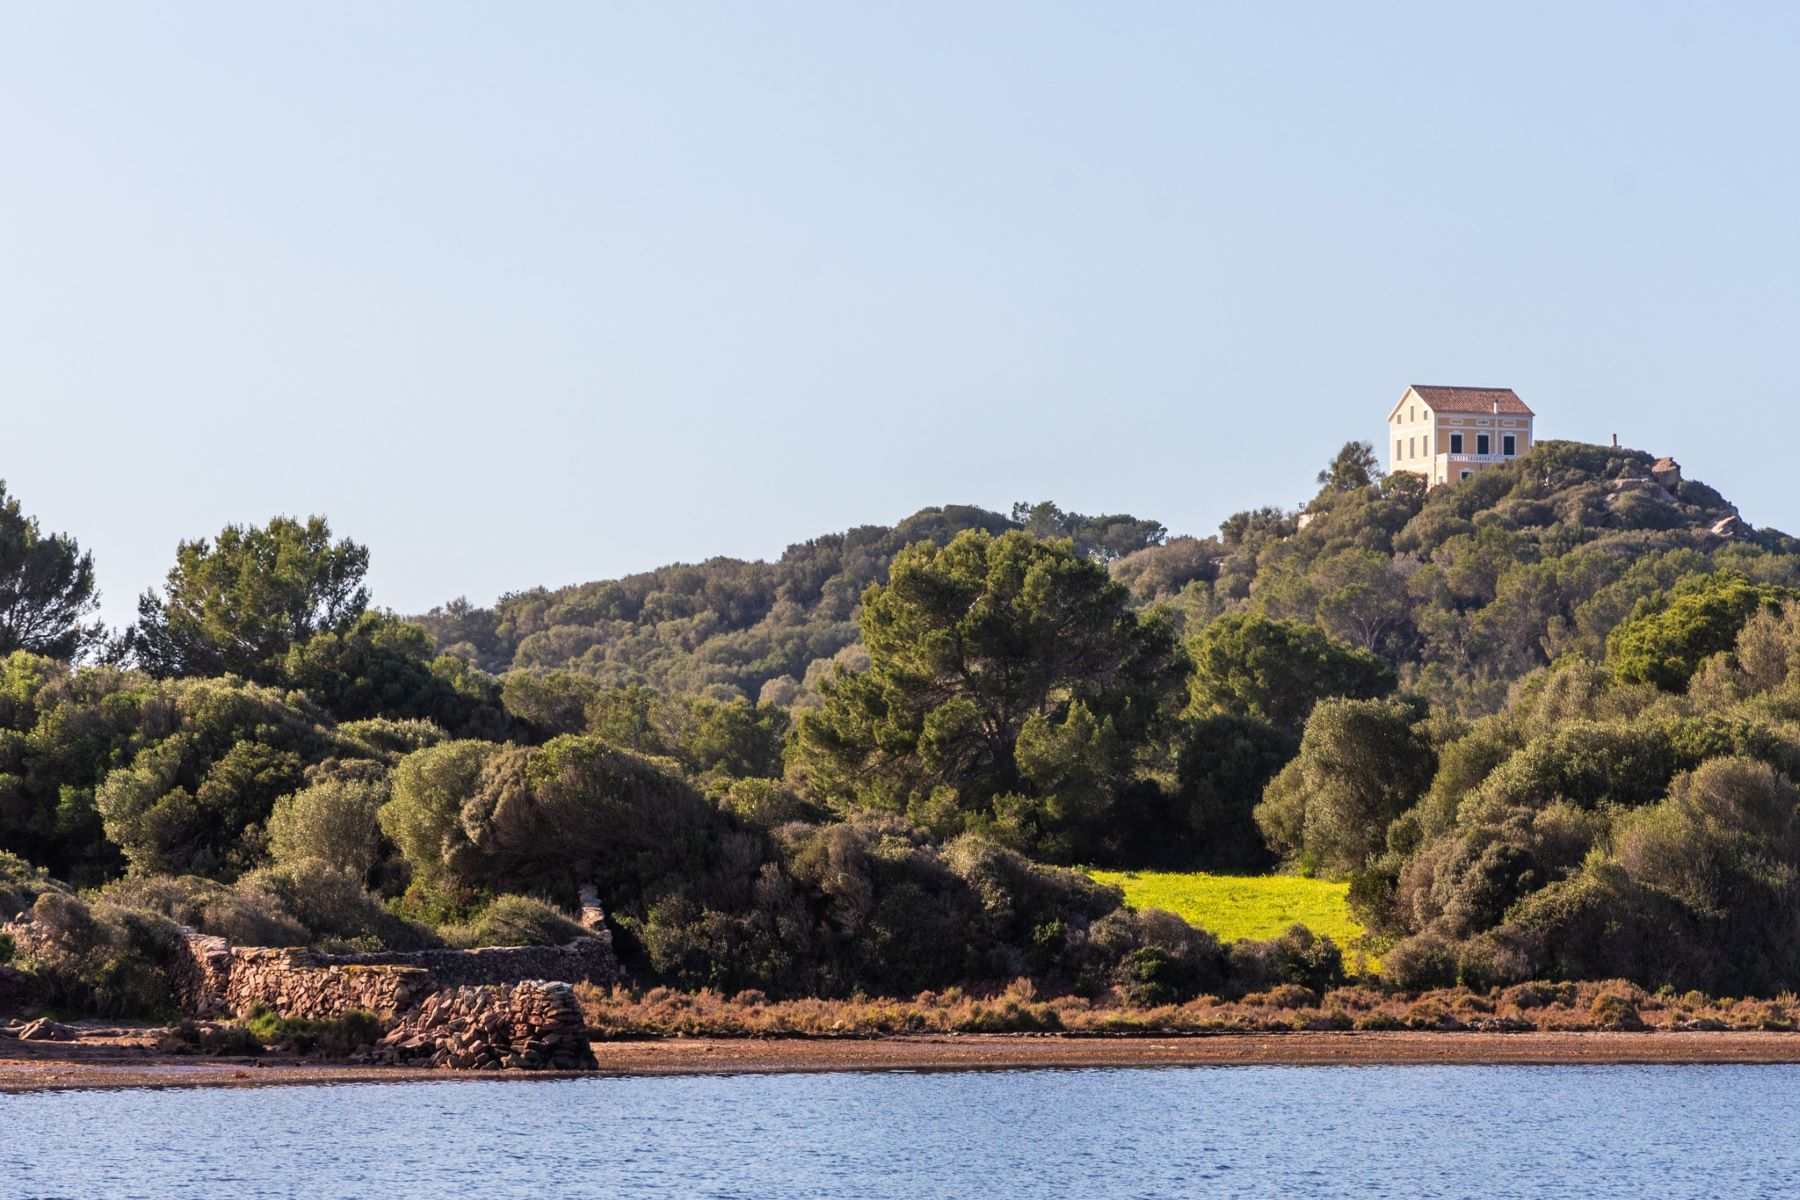 Single Family Homes for Sale at Stately finca with panoramic views and private sea access Menorca, Menorca Spain